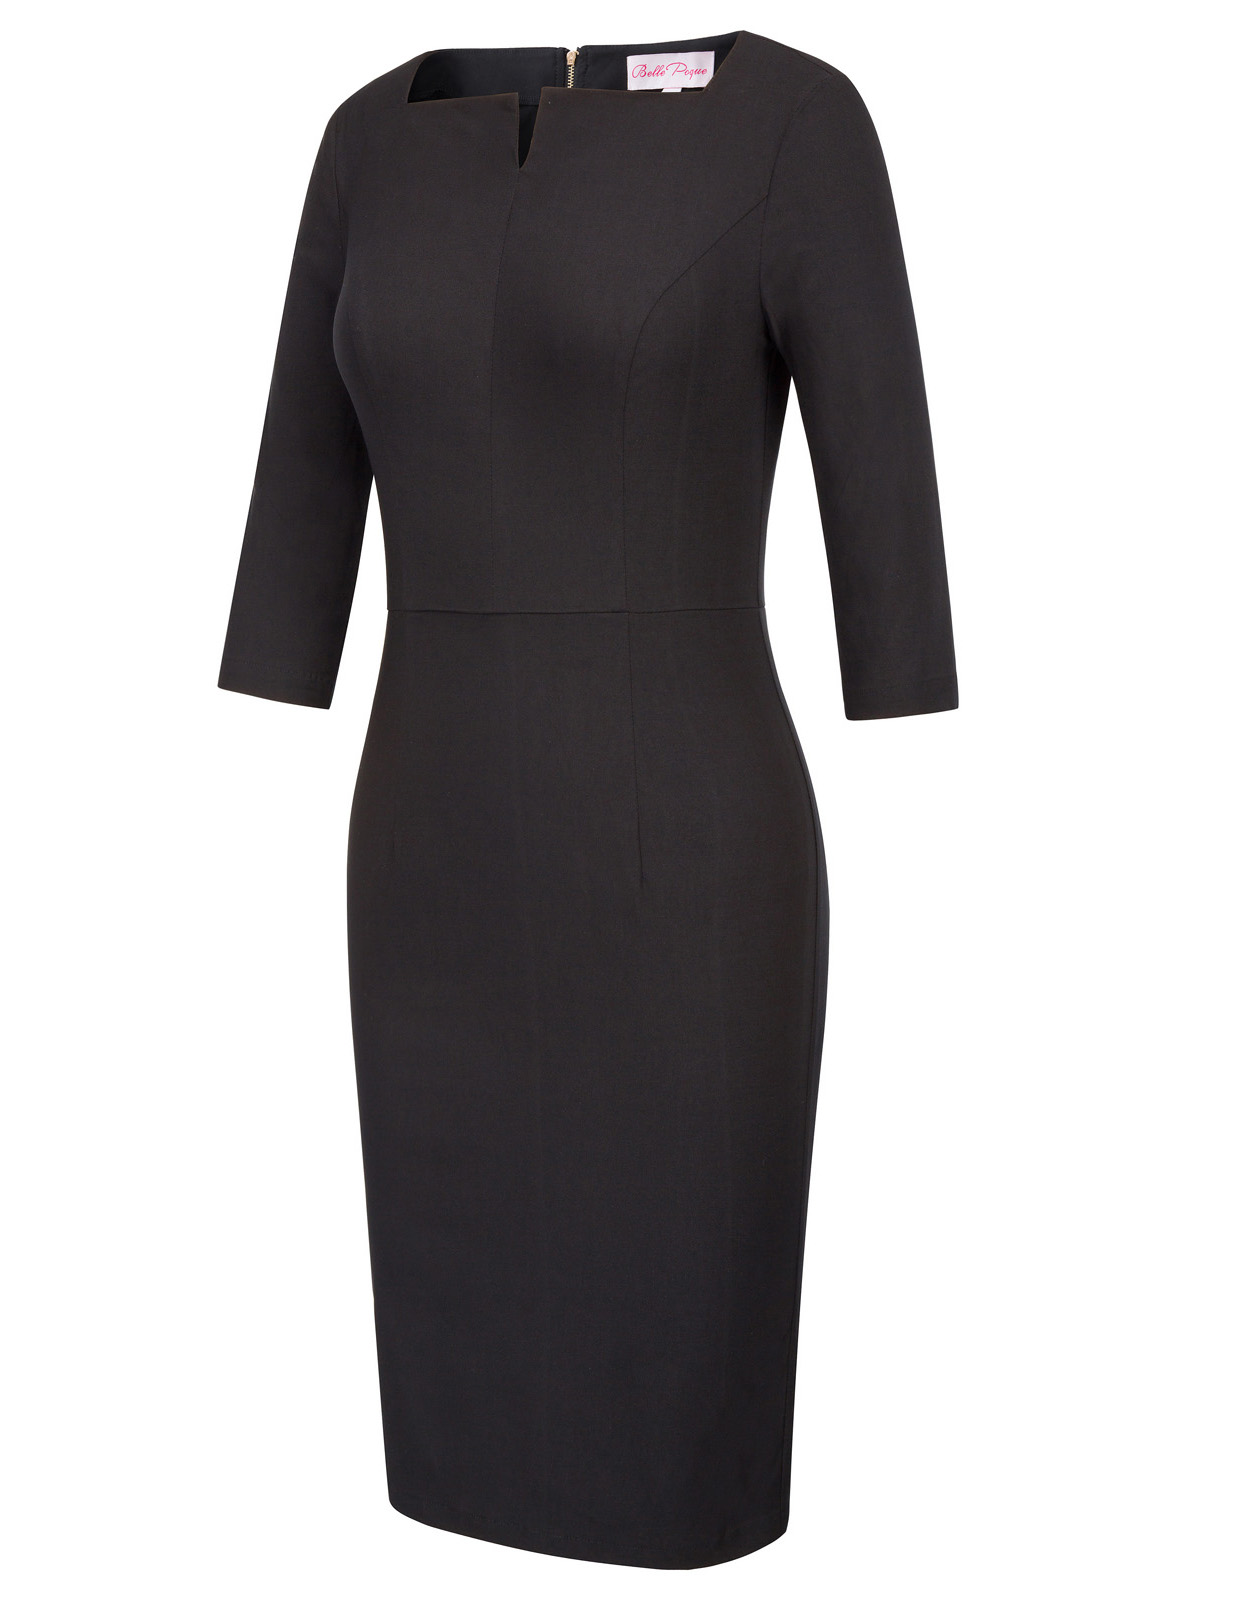 Bp Womens Solid Color 3/4 Sleeve Office Hips-wrapped Bodycon Slim Pencil Dress